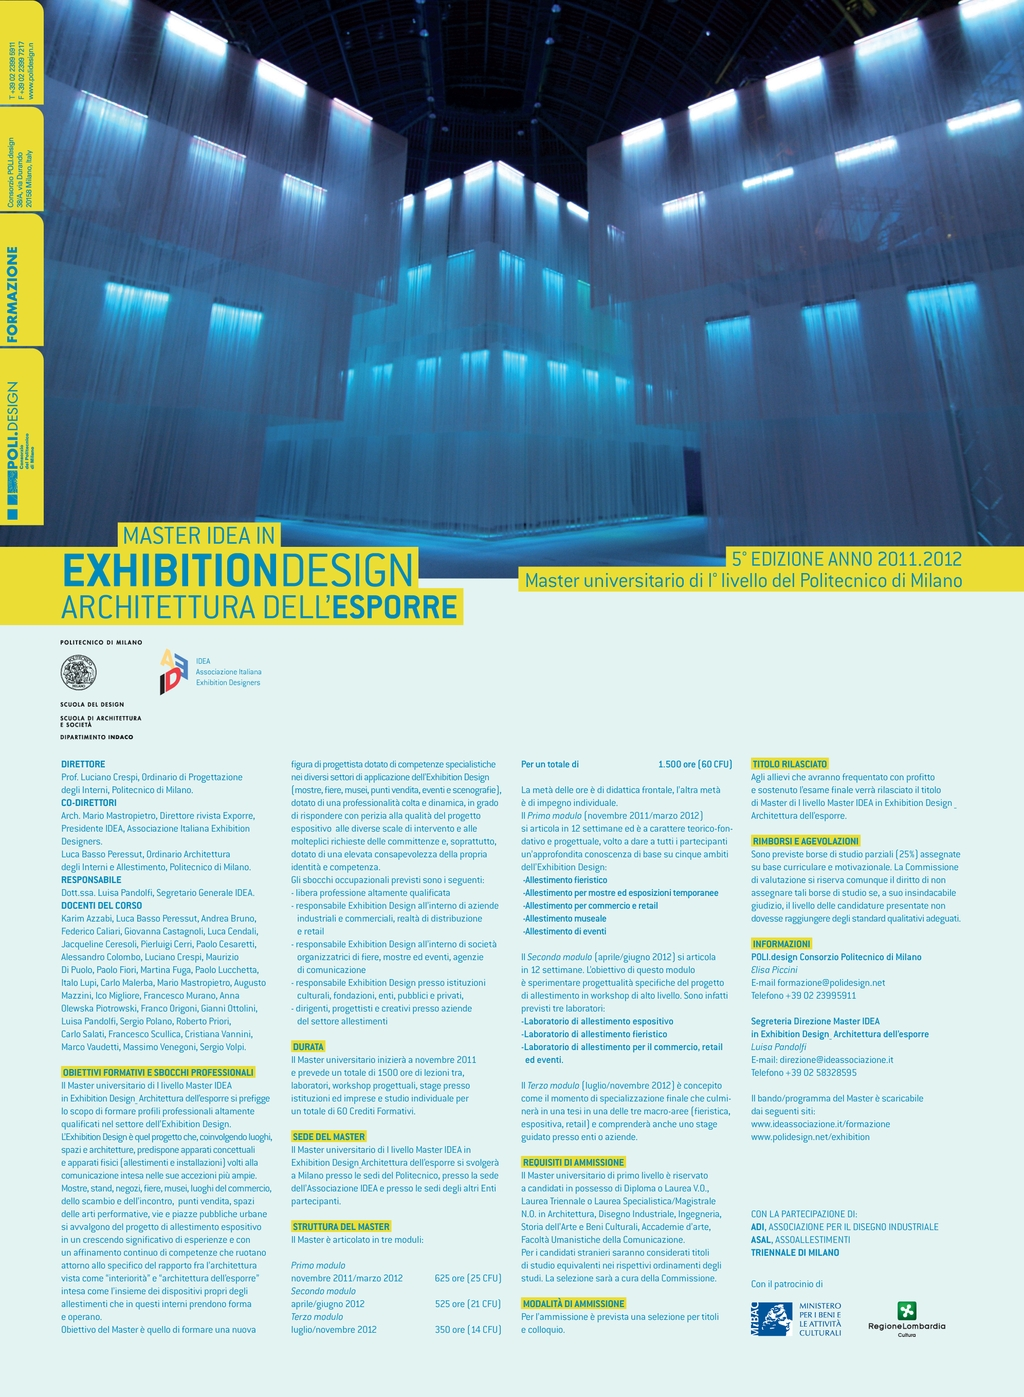 MASTER IDEA IN EXHIBITION DESIGN 11/12